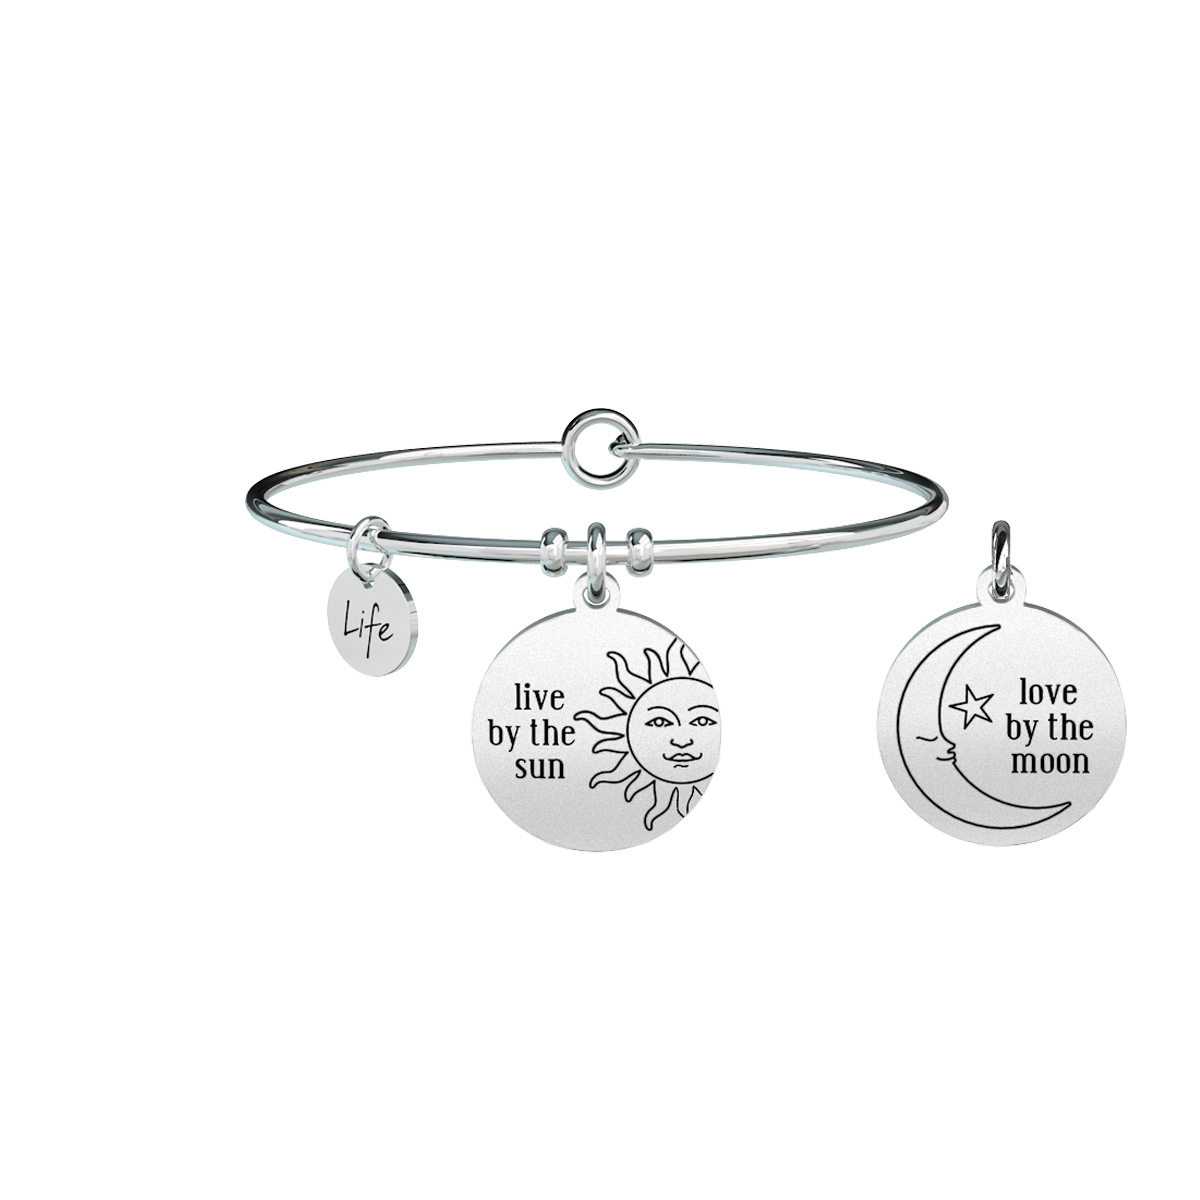 Bracciale KIDULT philosophy acciaio 316L 731310 LIVE BY THE SUN LOVE BY THE MOON